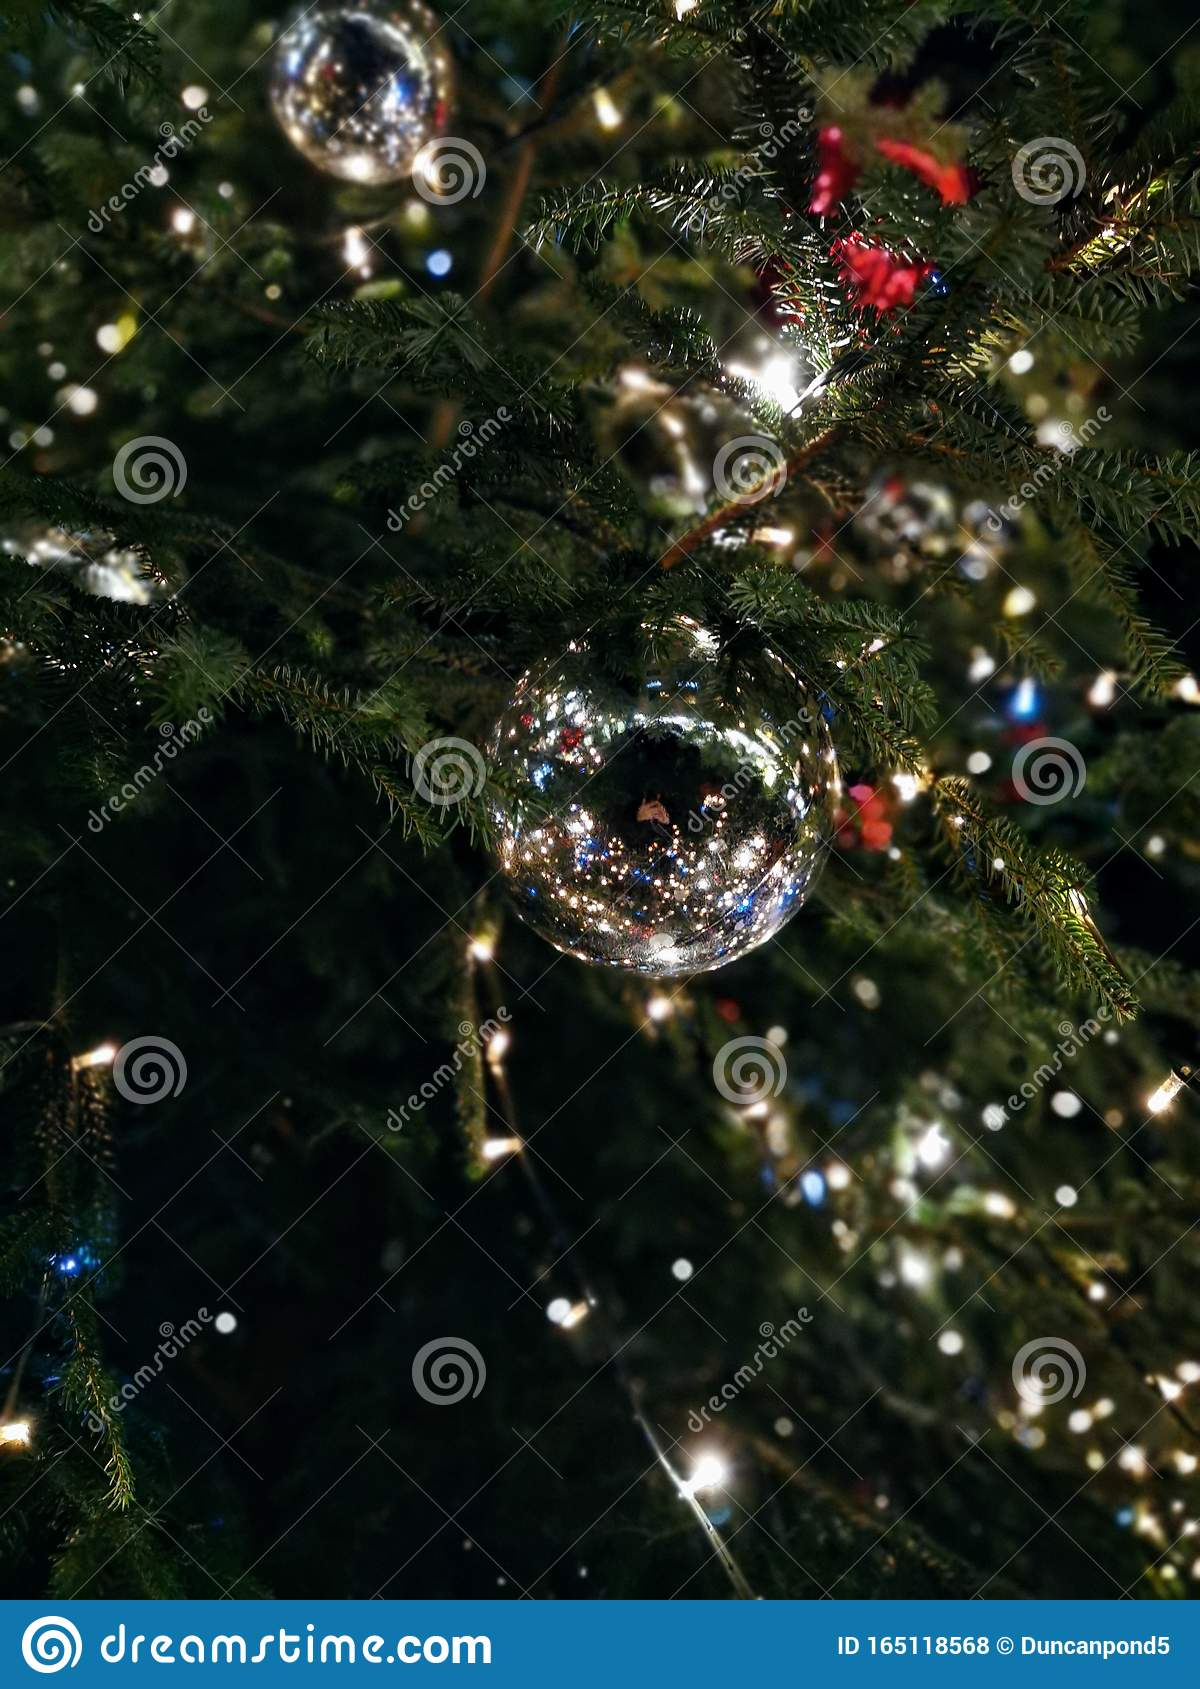 Silver Christmas Tree Ornaments At Night Stock Photo Image Of Decorated Zurich 165118568